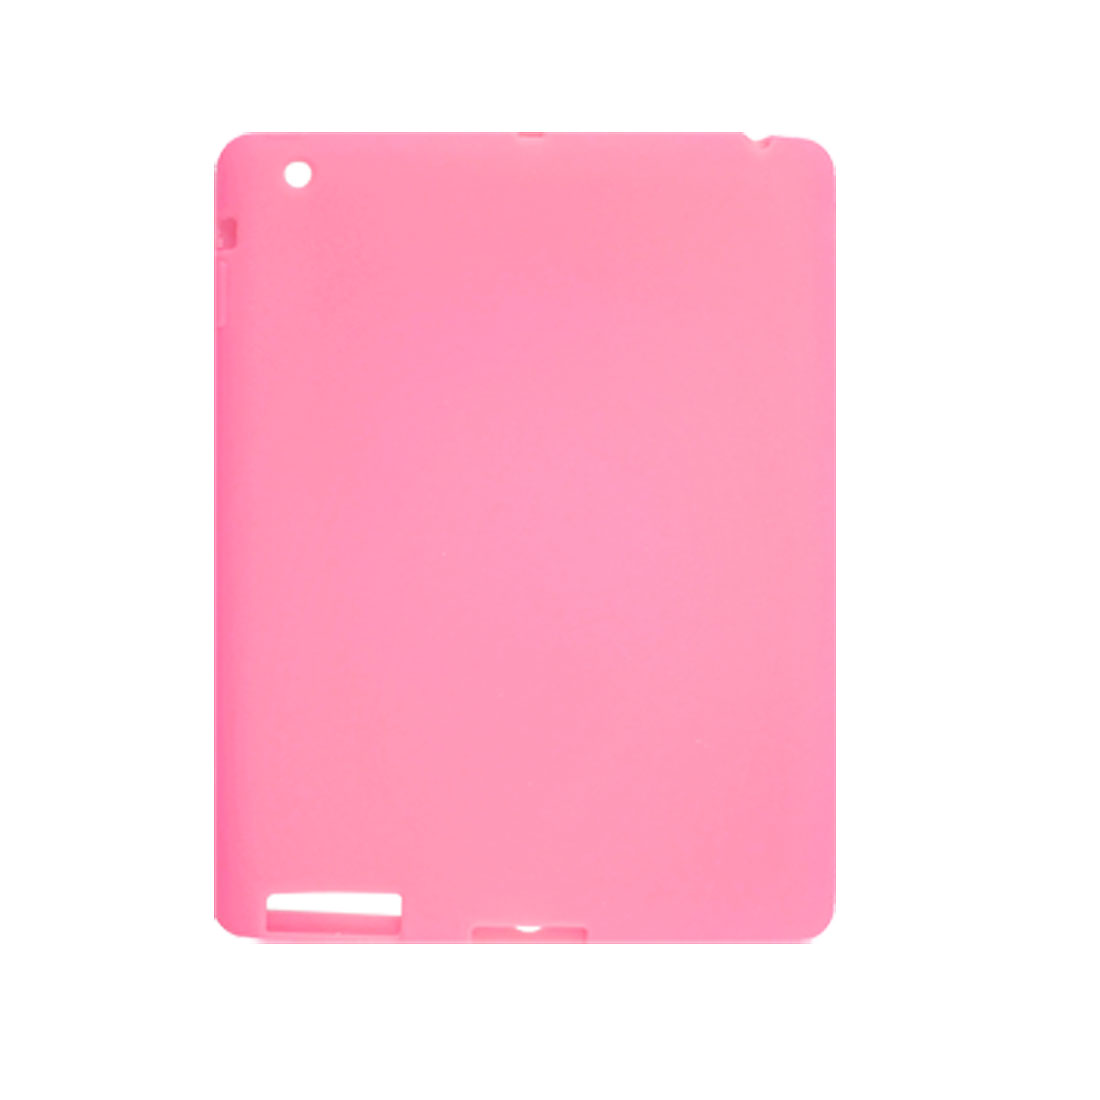 Pink Soft Silicone Protective Cover for iPad 2G